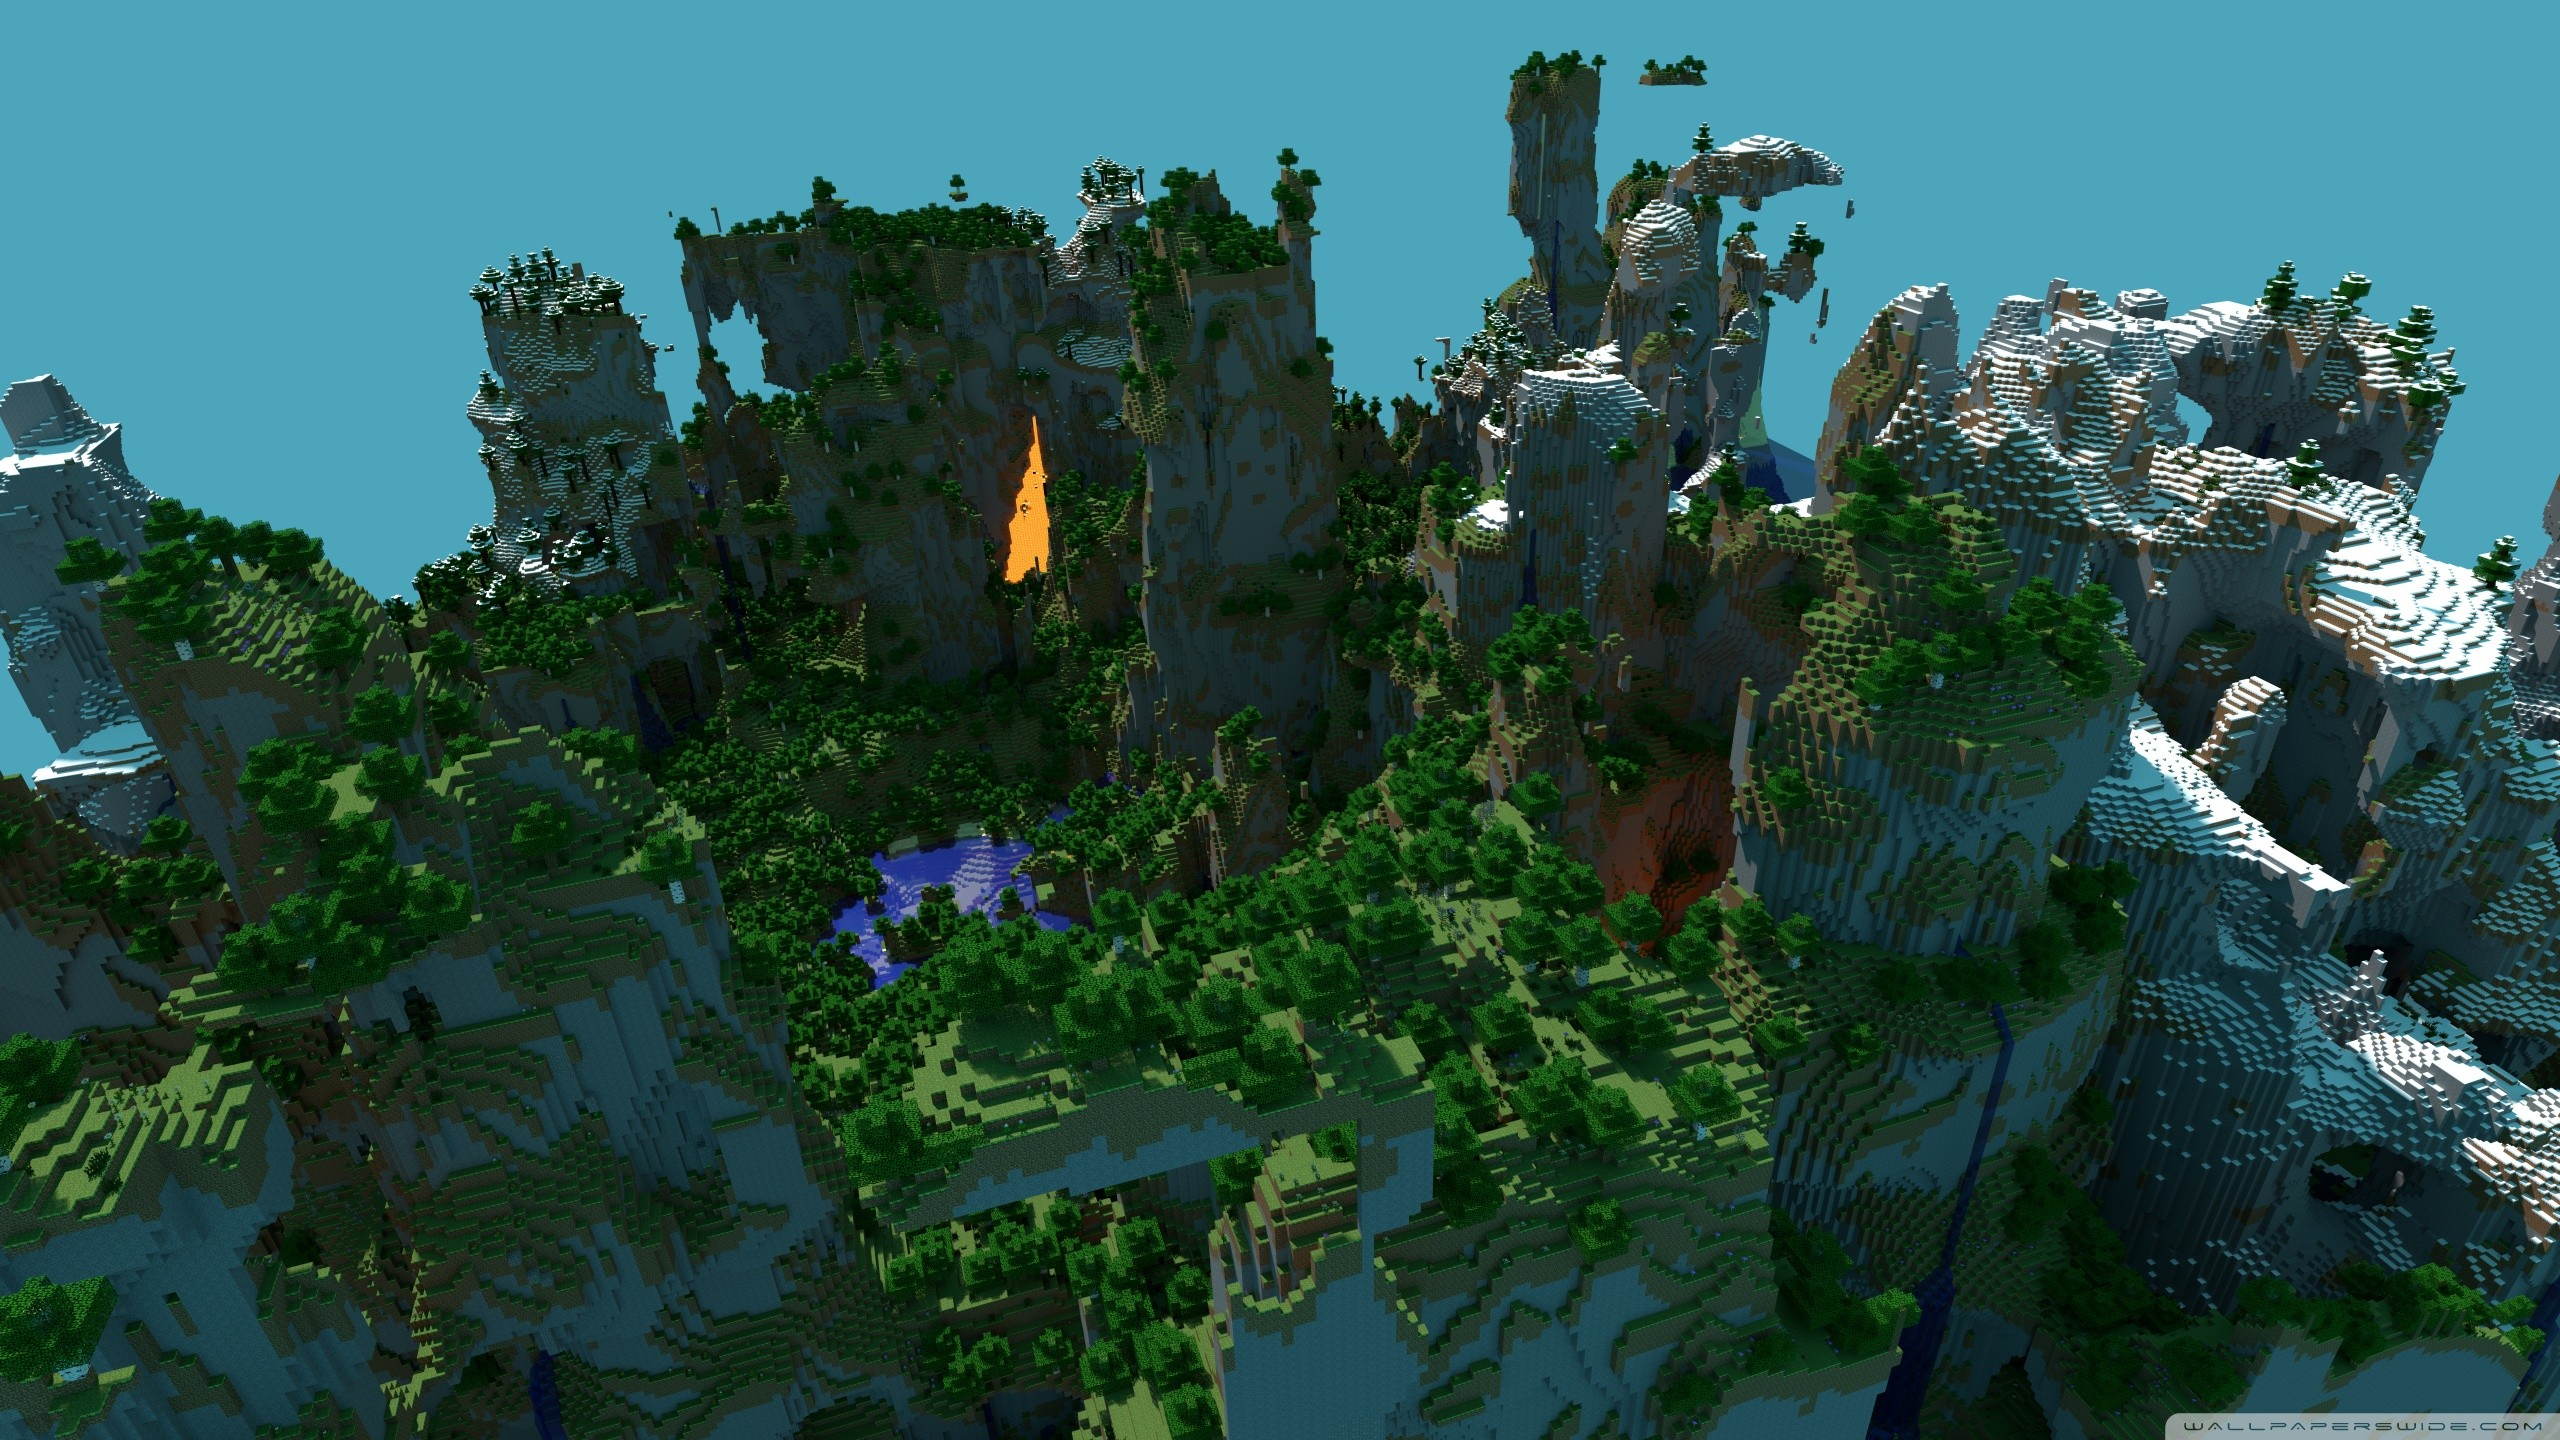 Minecraft Wallpaper 2560x1440 Posted By John Sellers